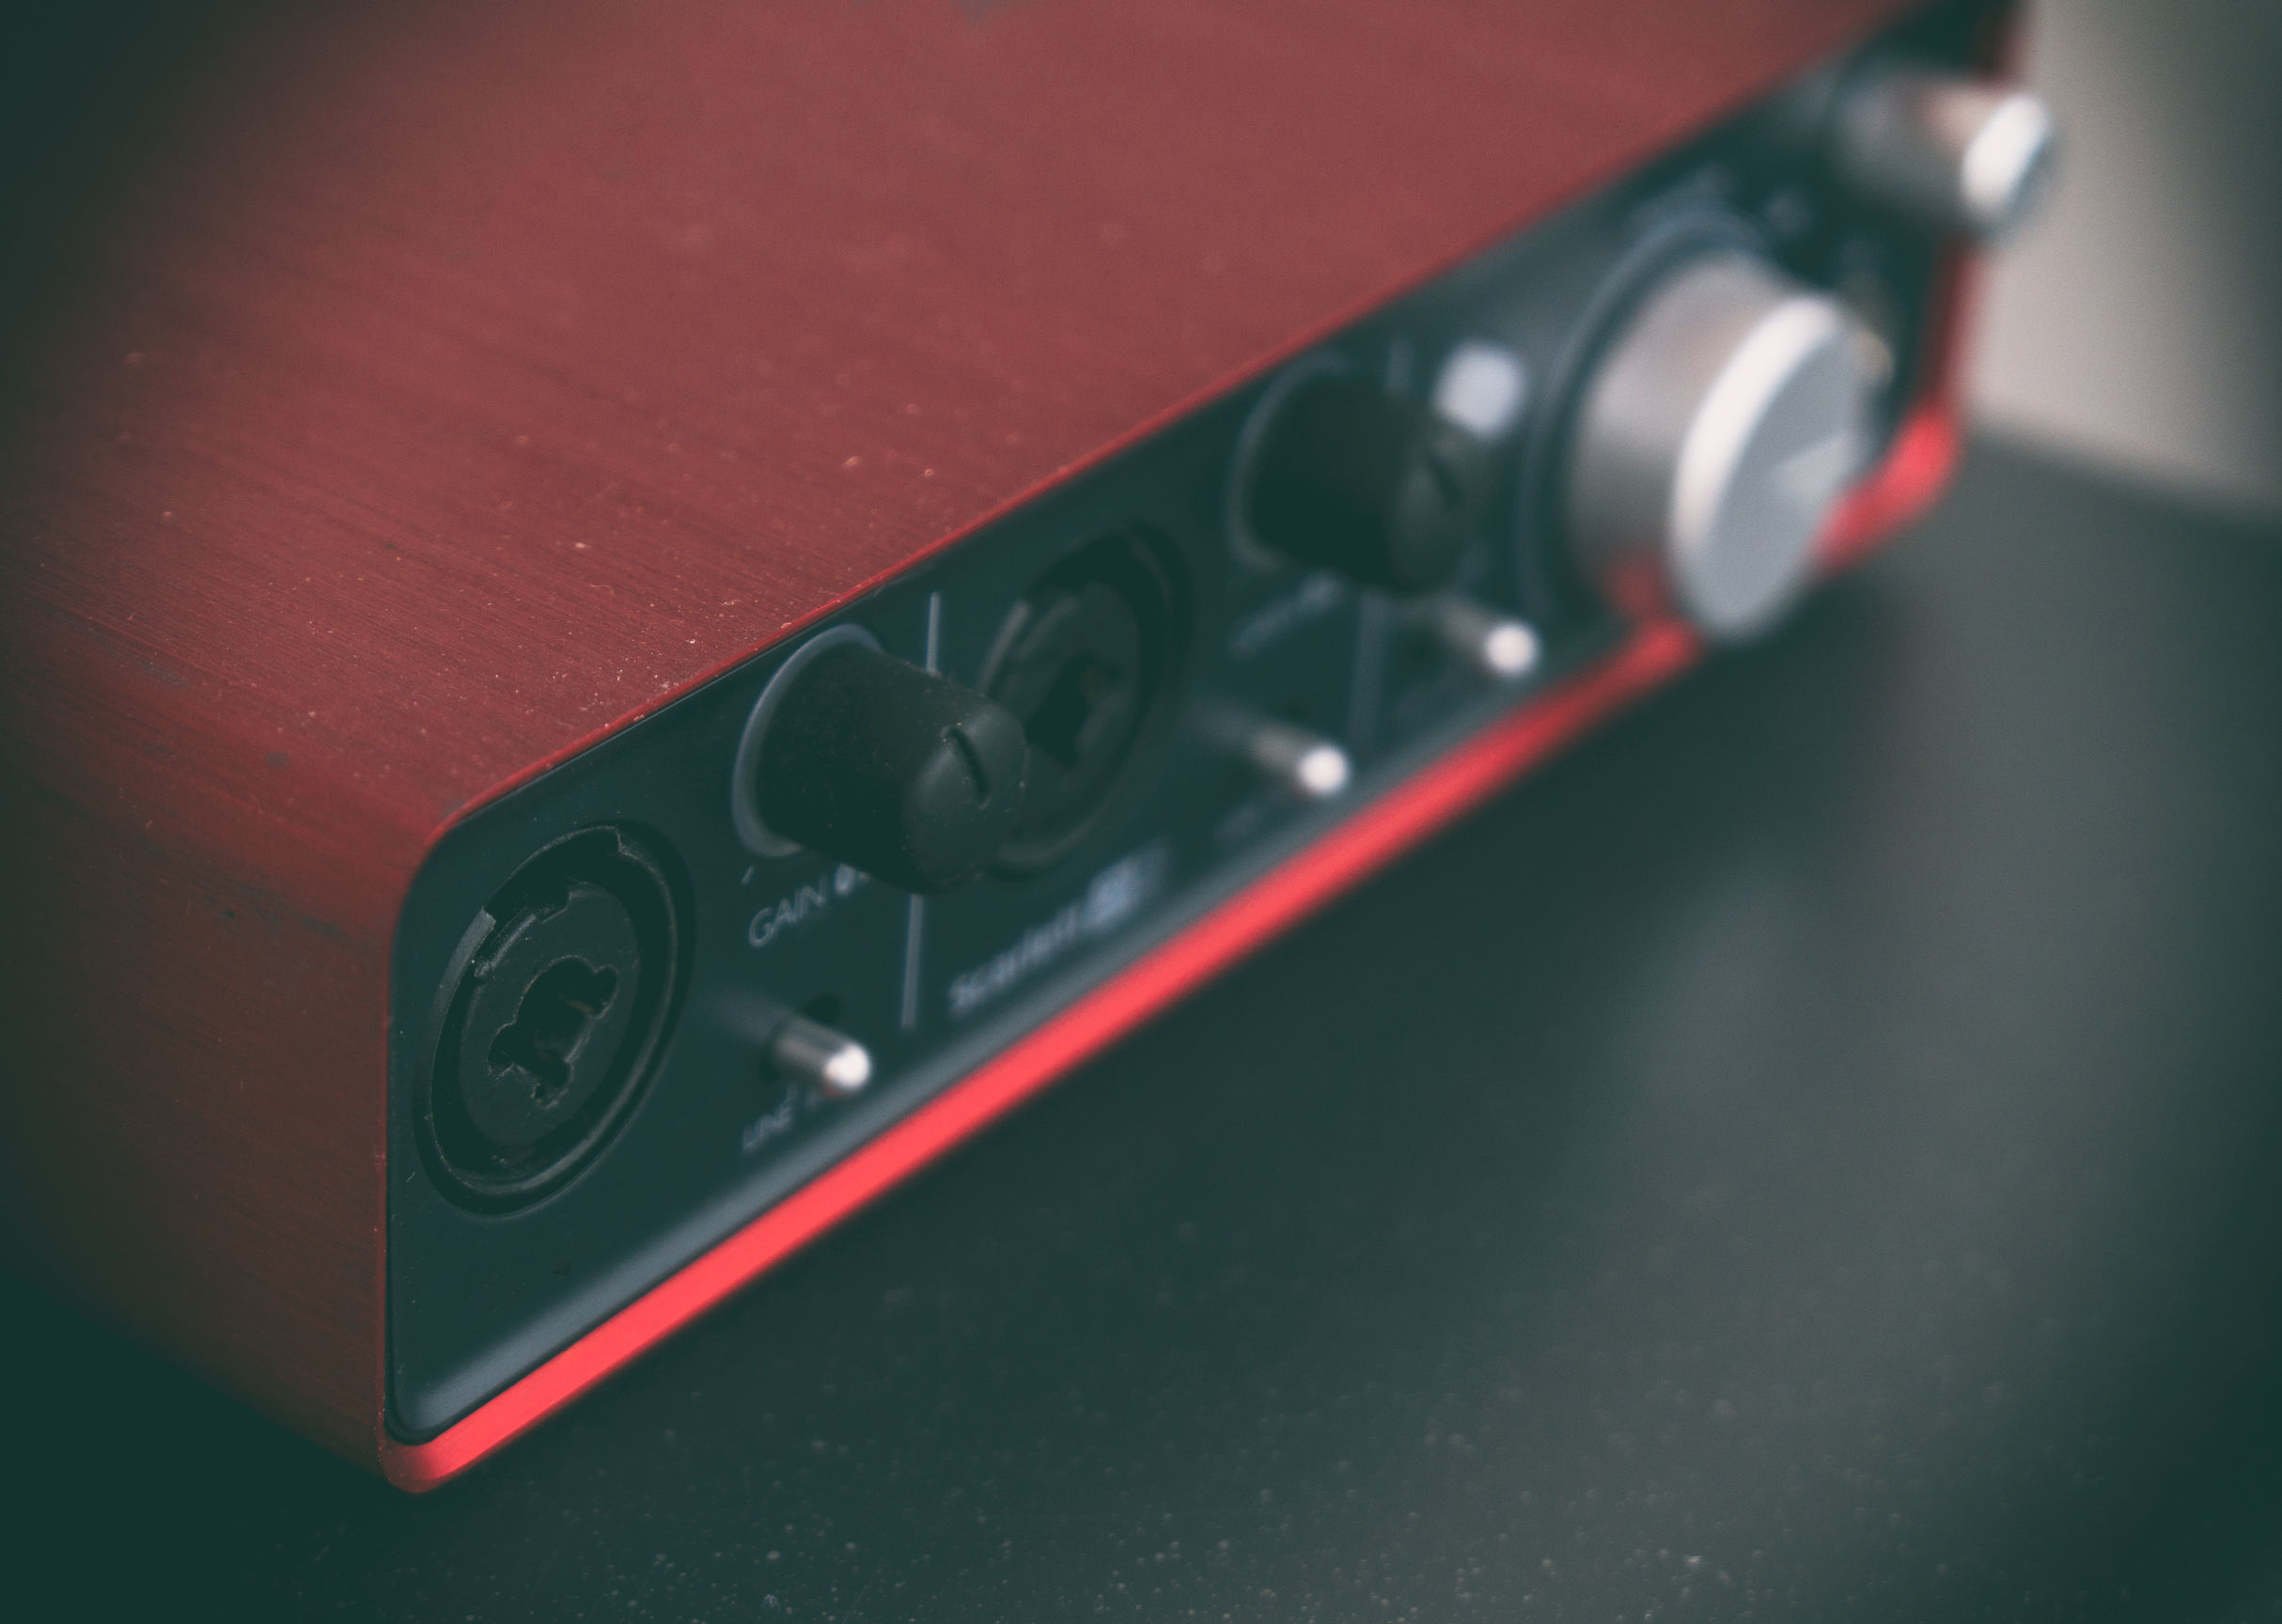 Close-up view of Professional portable red sound card.